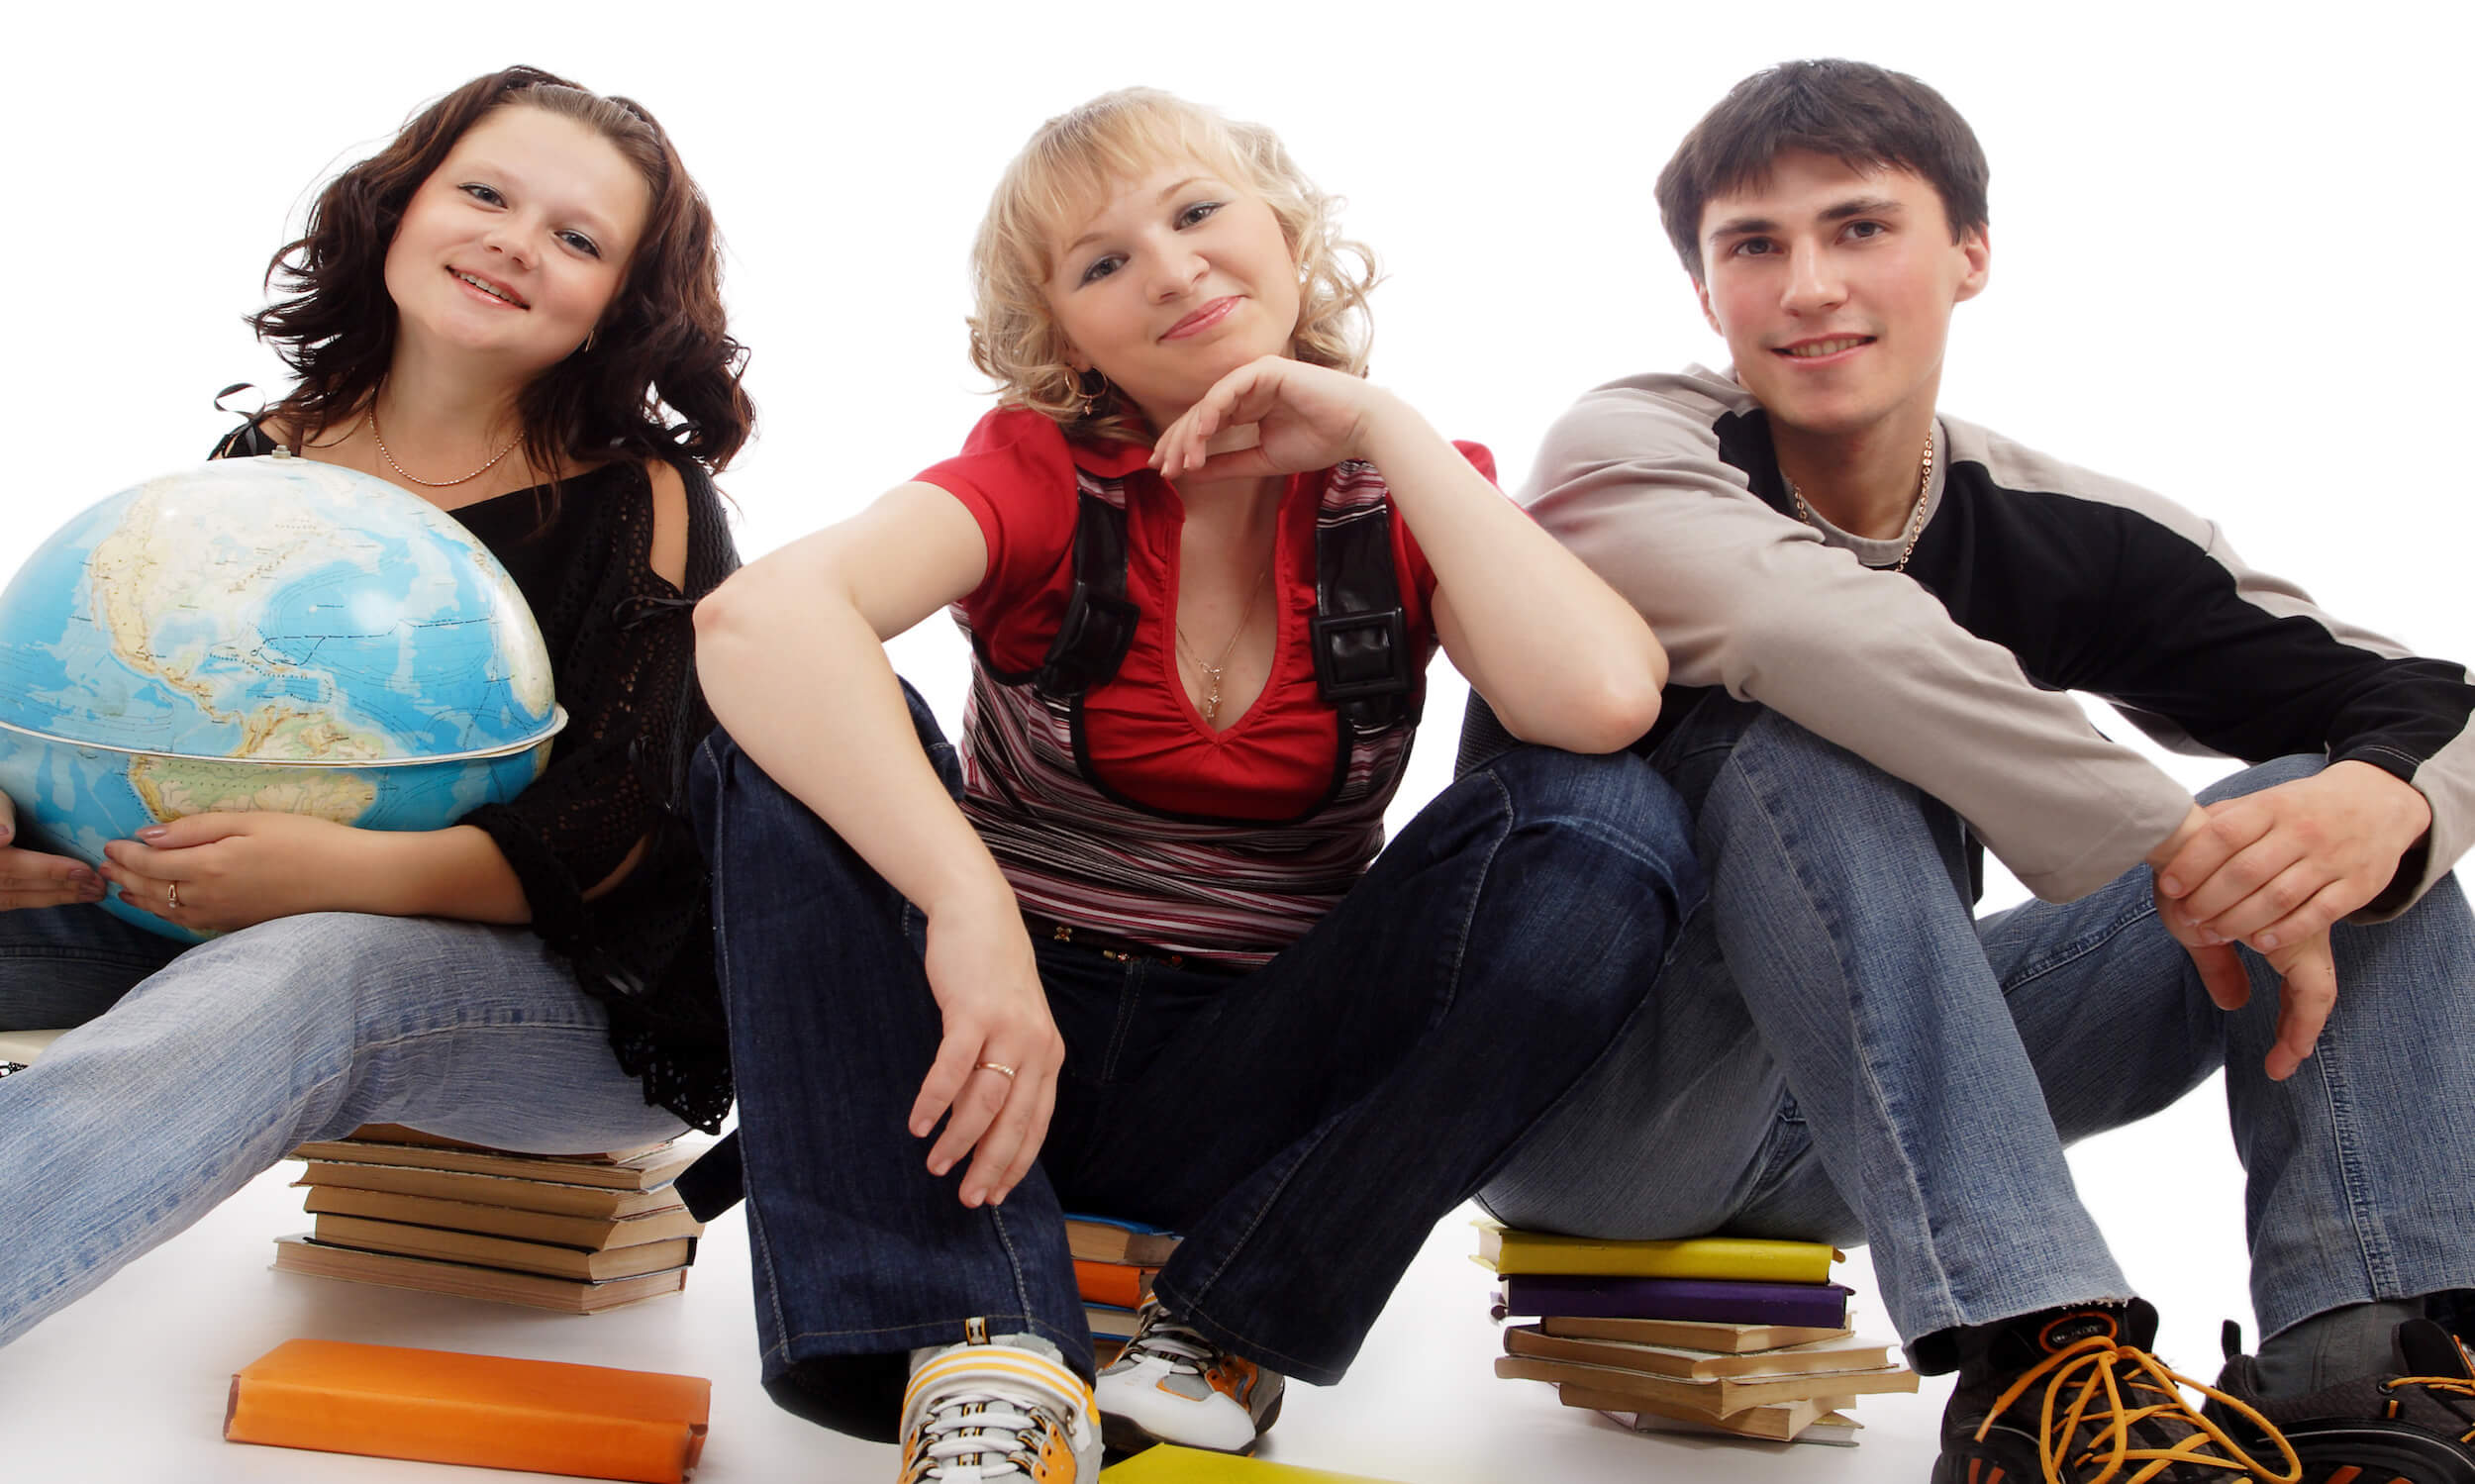 Teenagers sitting on school books and one holding a globe